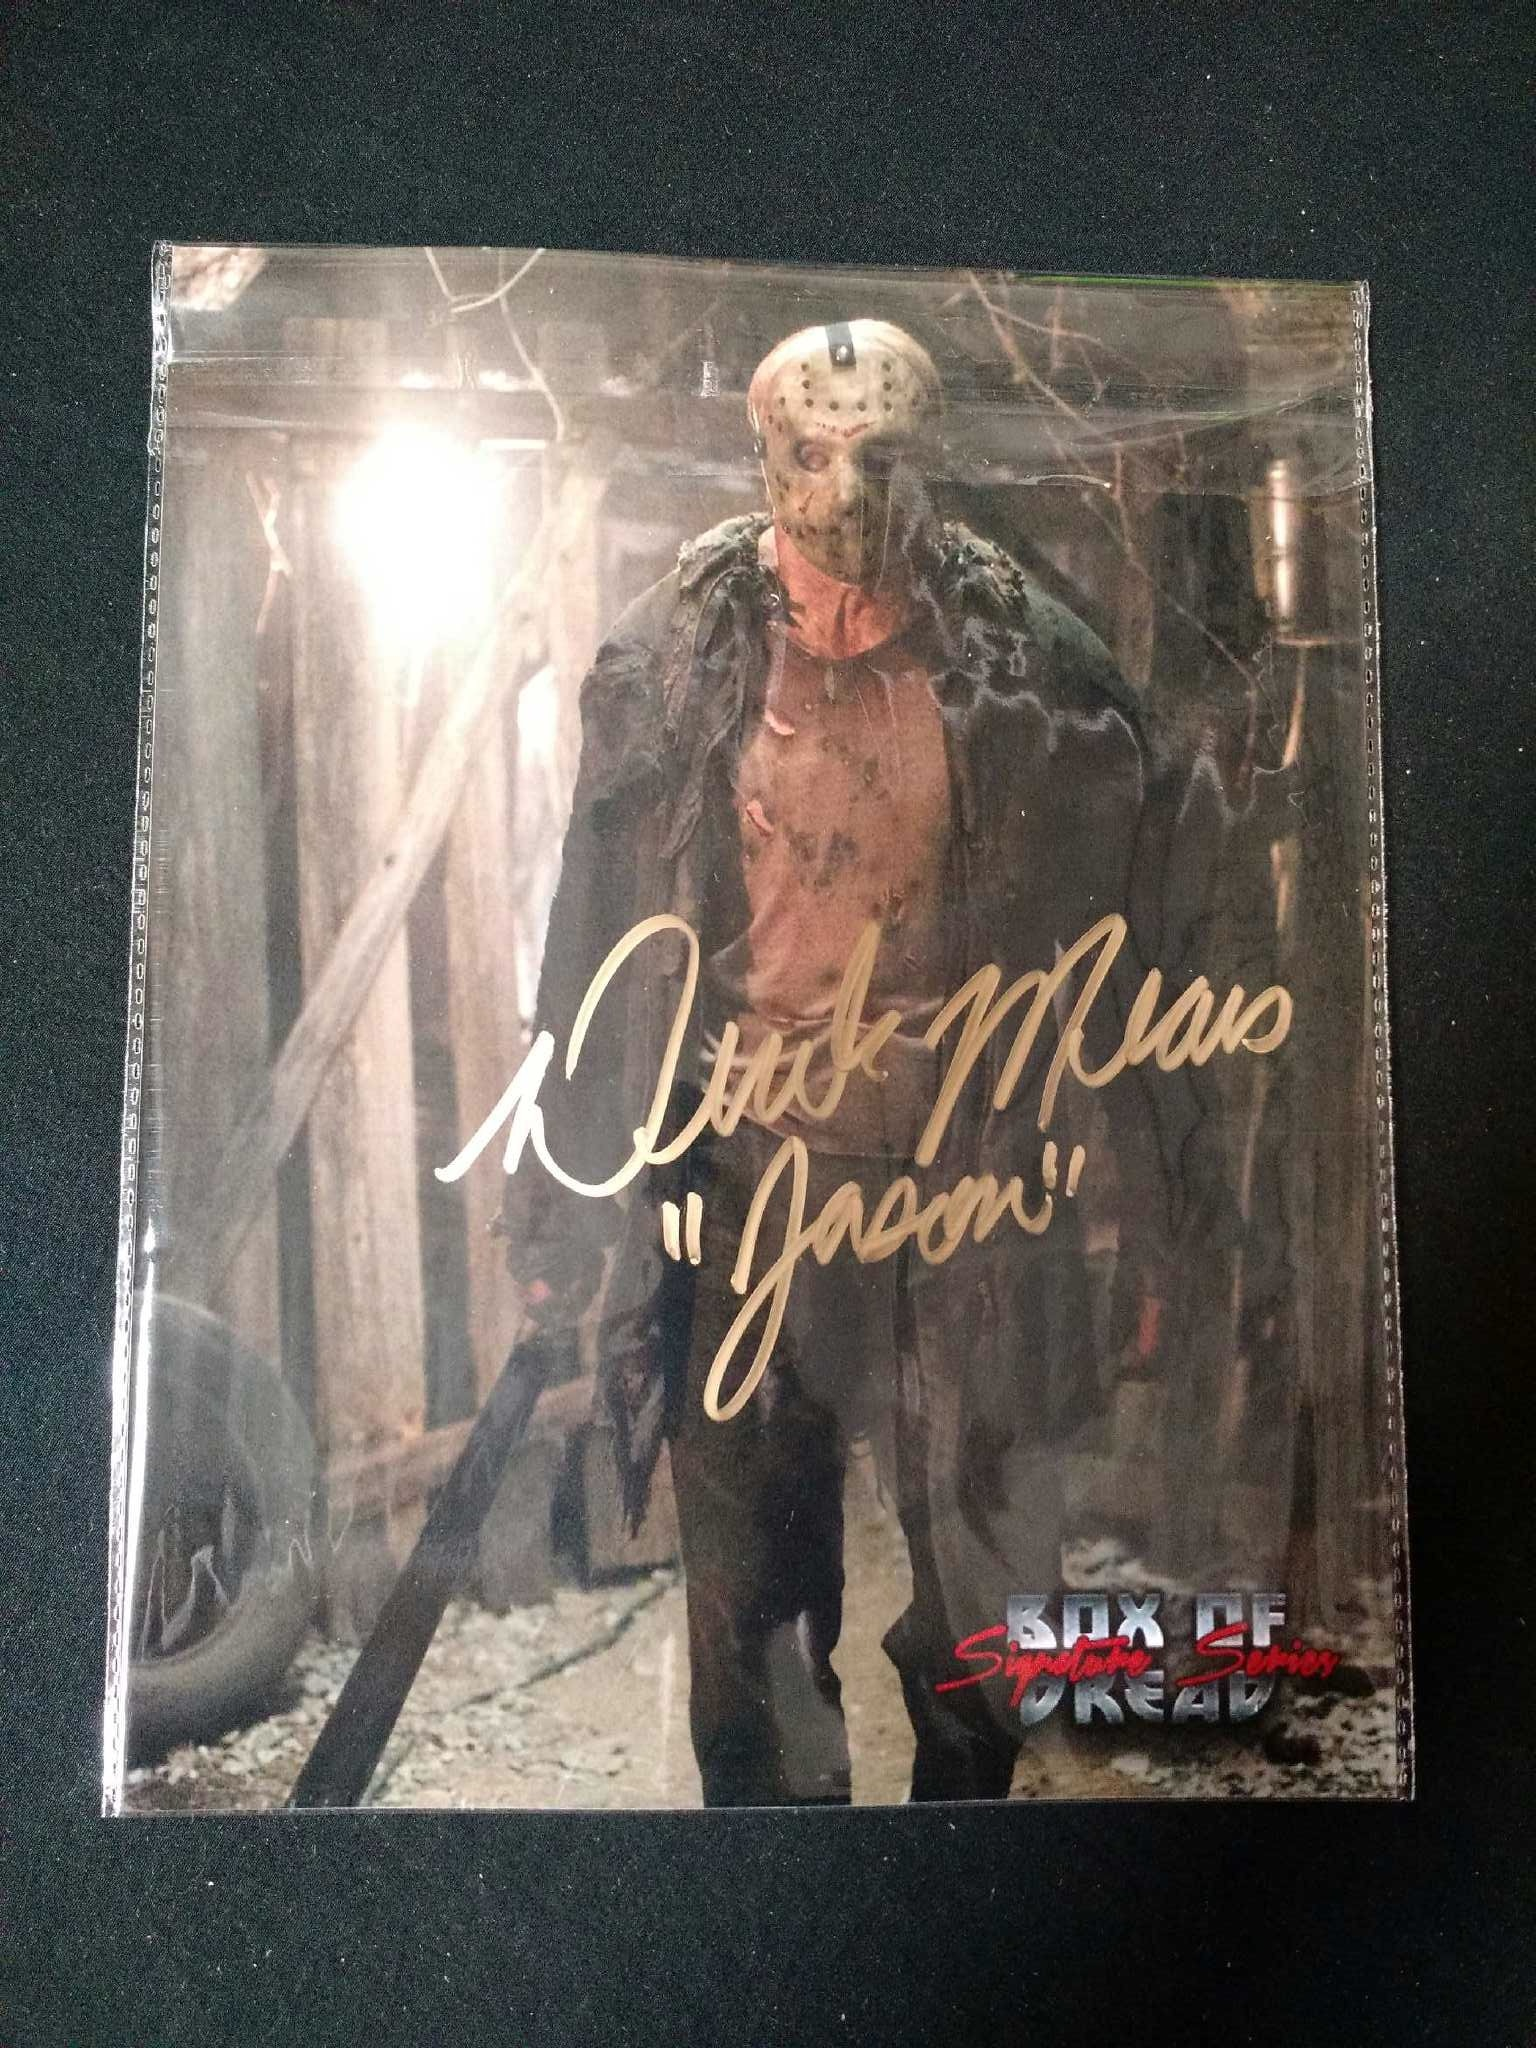 Jason Voorhees Christmas Box of Dread Seventh Box